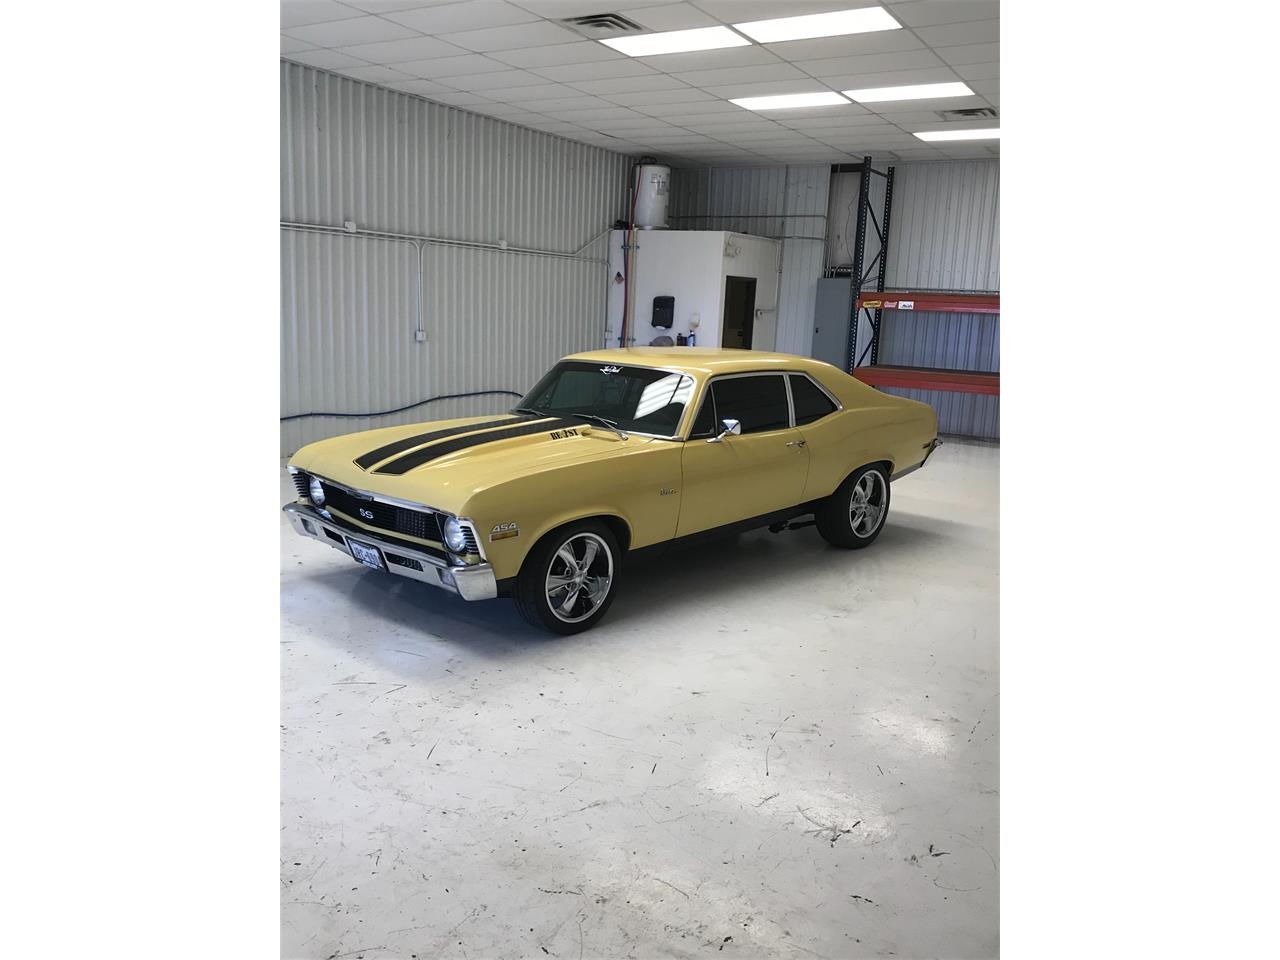 Large Picture of Classic '70 Chevrolet Nova SS located in Aransas Pass Texas Offered by a Private Seller - Q2QN